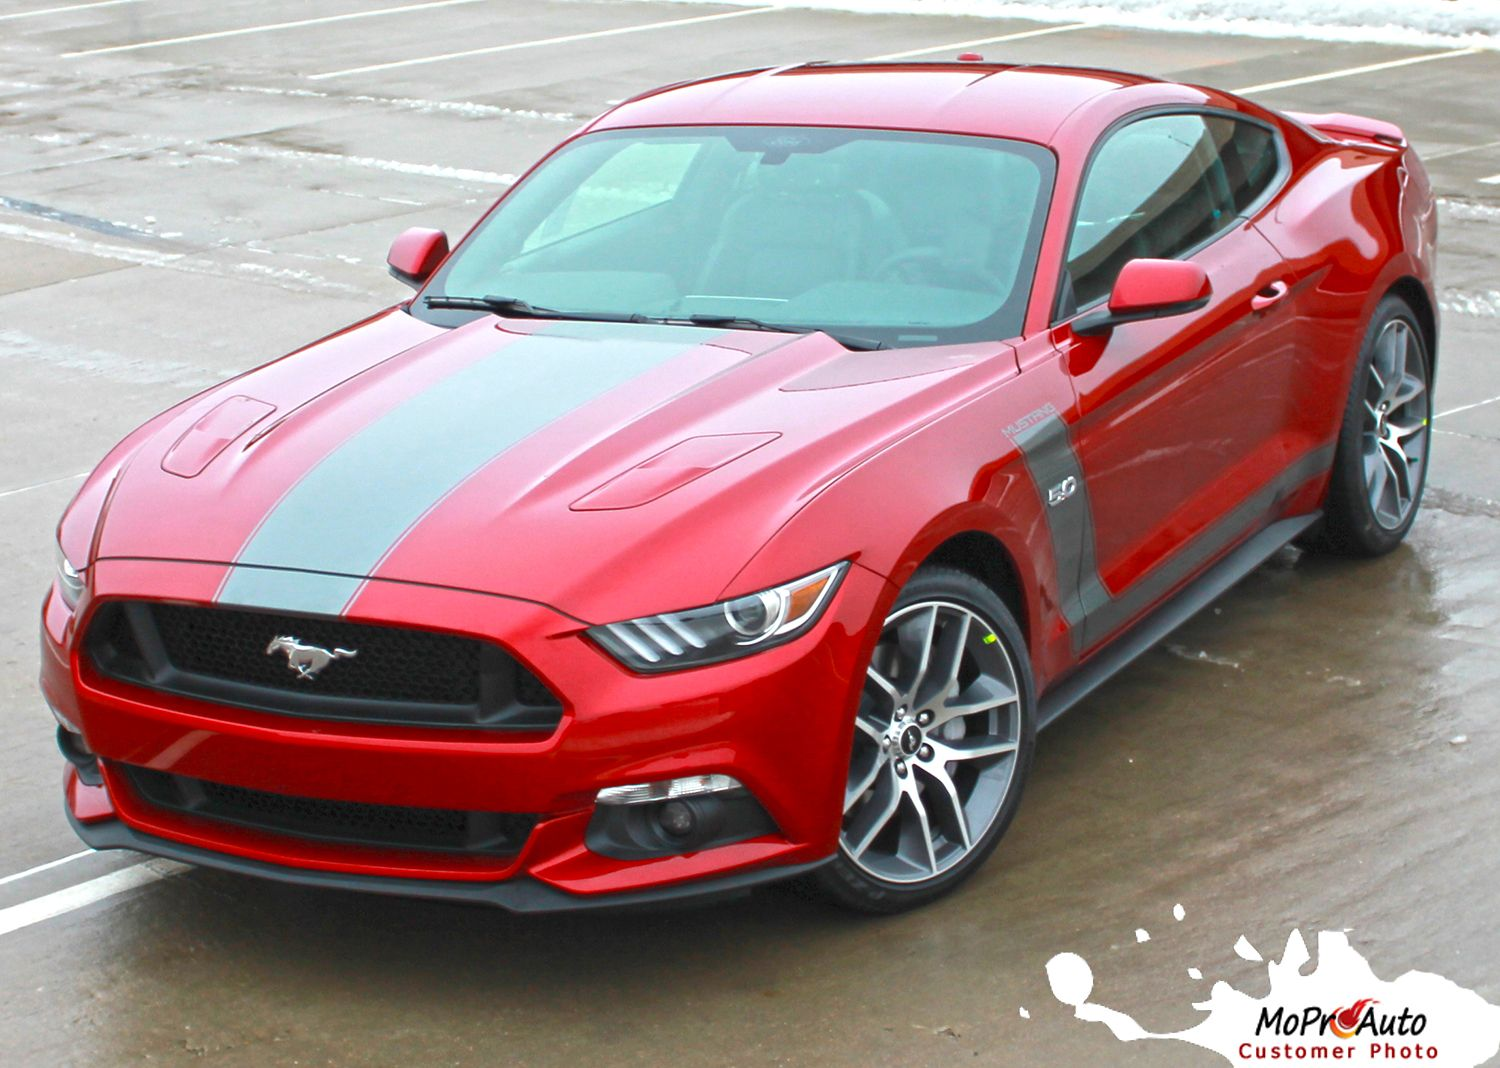 Stellar 2015 ford mustang boss style hood and side vinyl graphic decals stripes